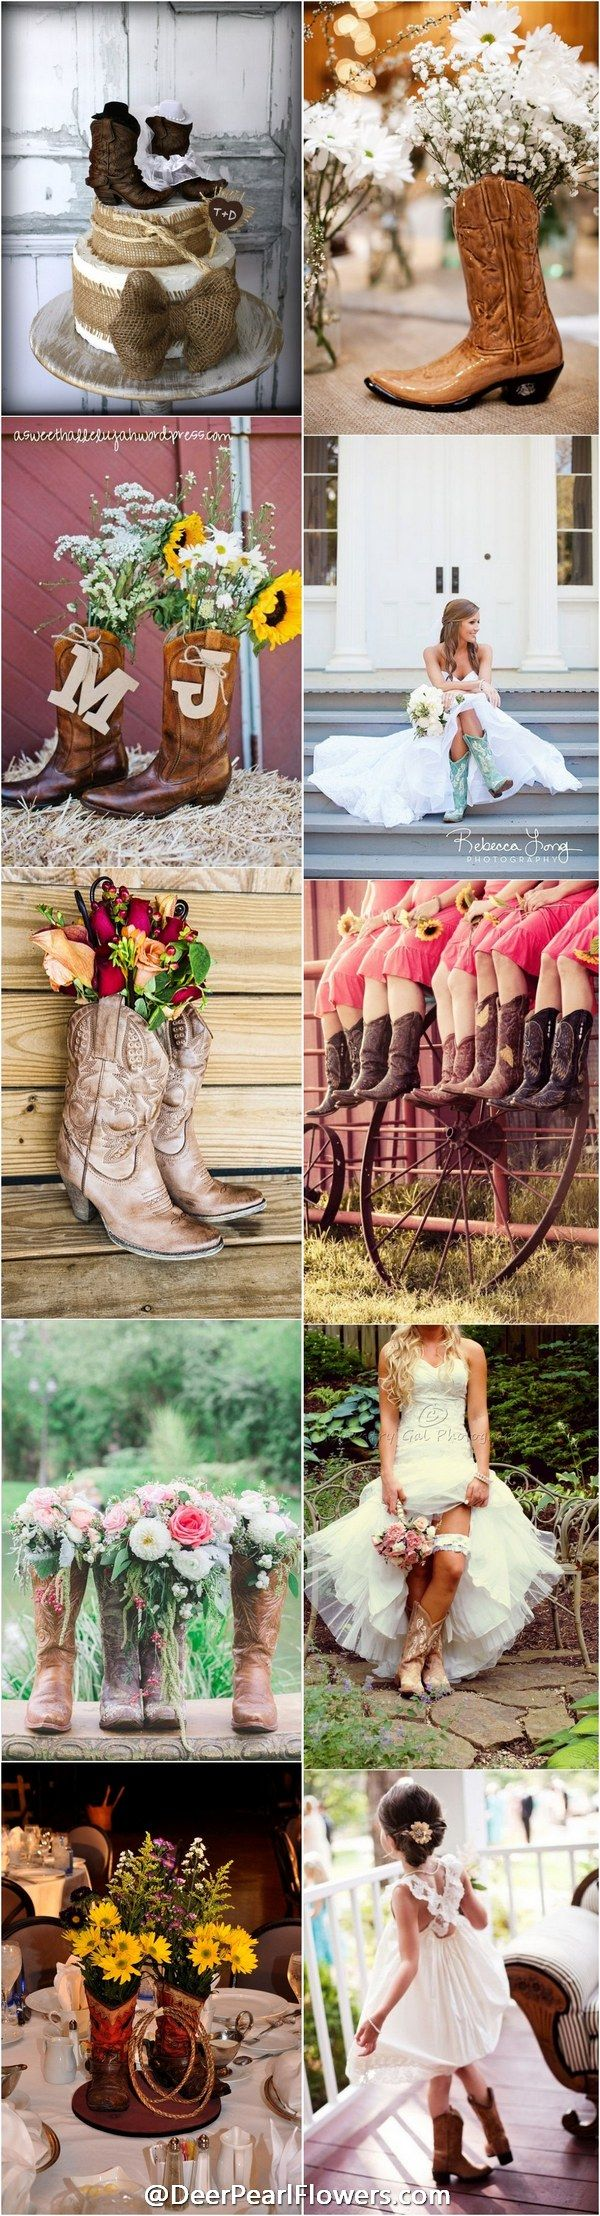 delightful Cowgirl Wedding Ideas Part - 6: rustic country cowboy cowgirl wedding ideas -  http:--www.deerpearlflowers.com